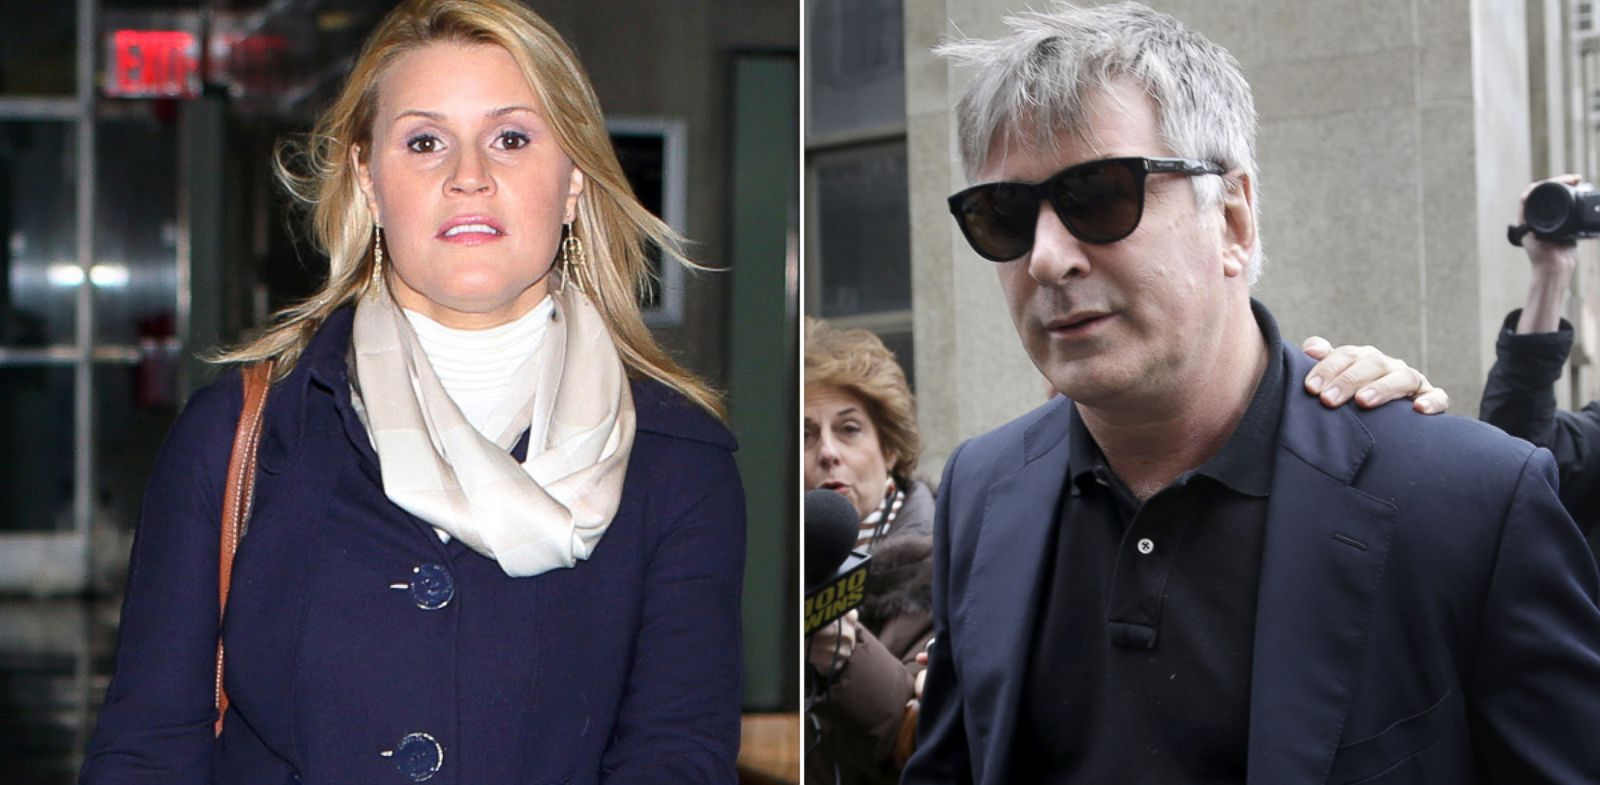 PHOTO: At left, Genevieve Sabourin; at right, Alec Baldwin.